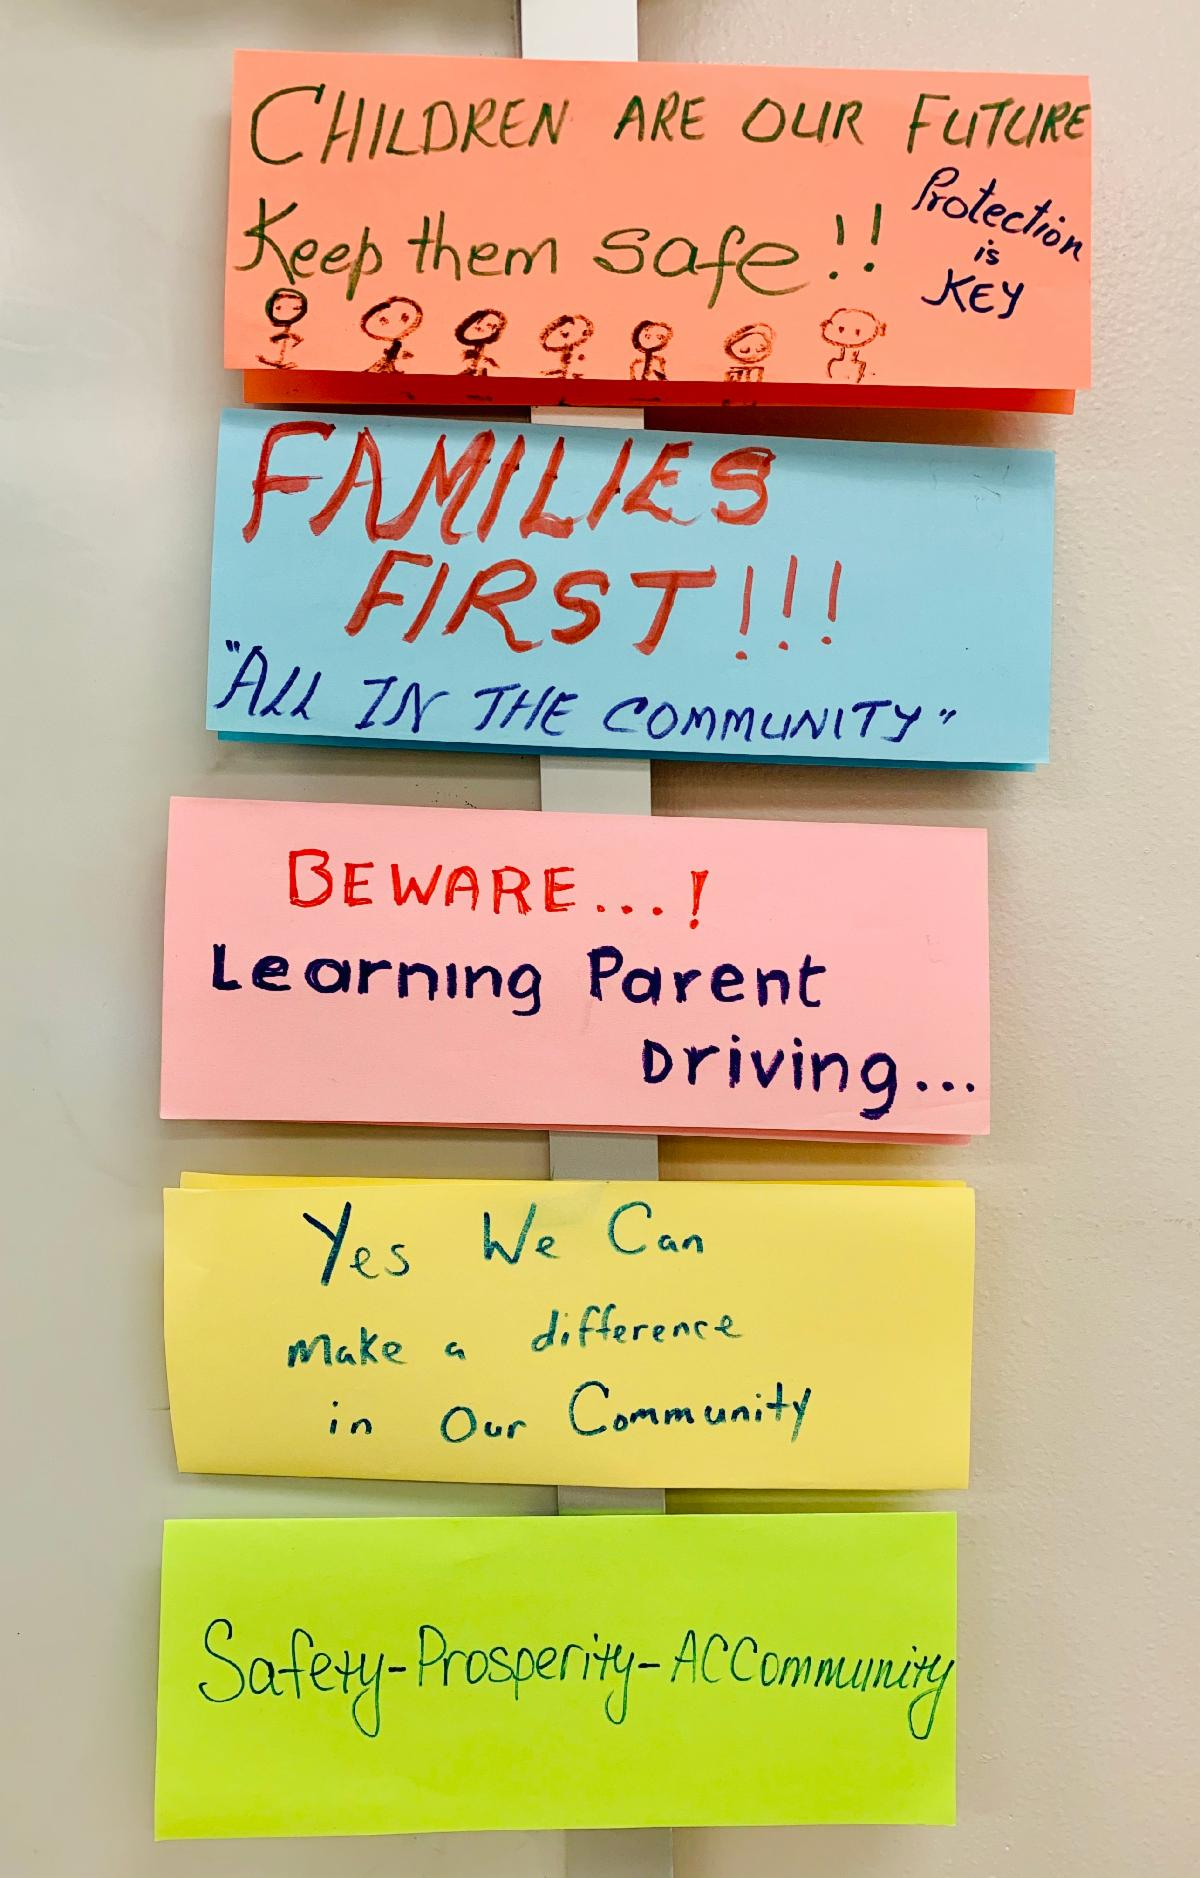 a picture of five slogans about children and families making a positive change and having a great future in their community